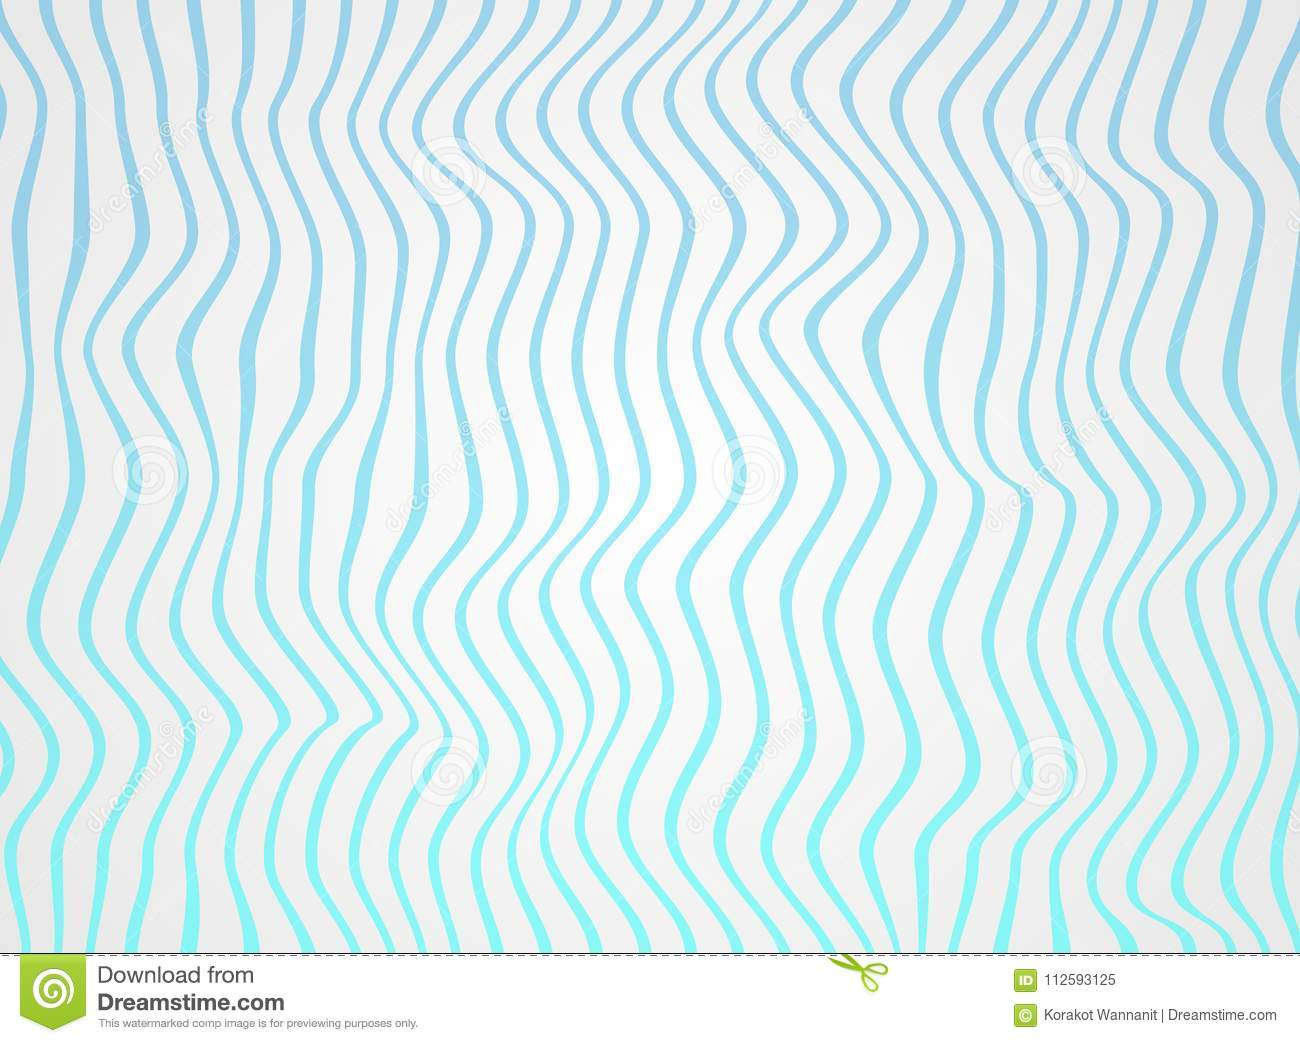 Abstract of gradient sea blue lines wave in pattern, soft white of rough surface